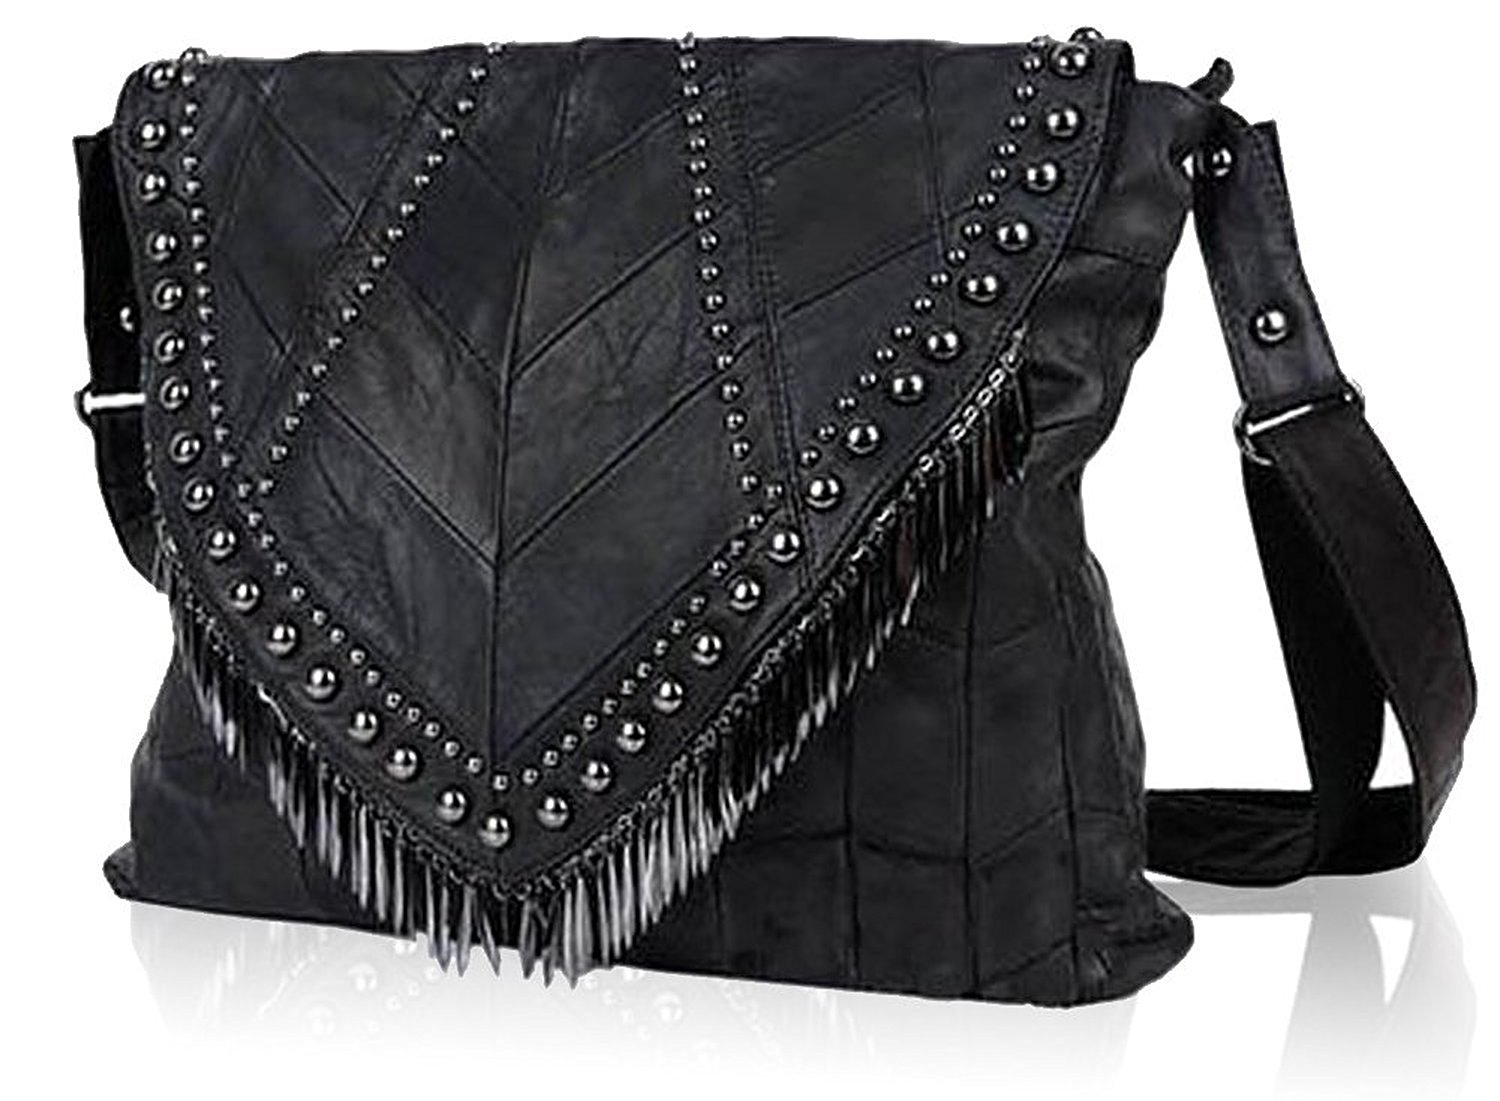 2c6322bff294 Get Quotations · ILISHOP Hot Sale Women s Lambskin Handbags Tassel Rivet  Studded Shoulder Bag Crossbody Bag